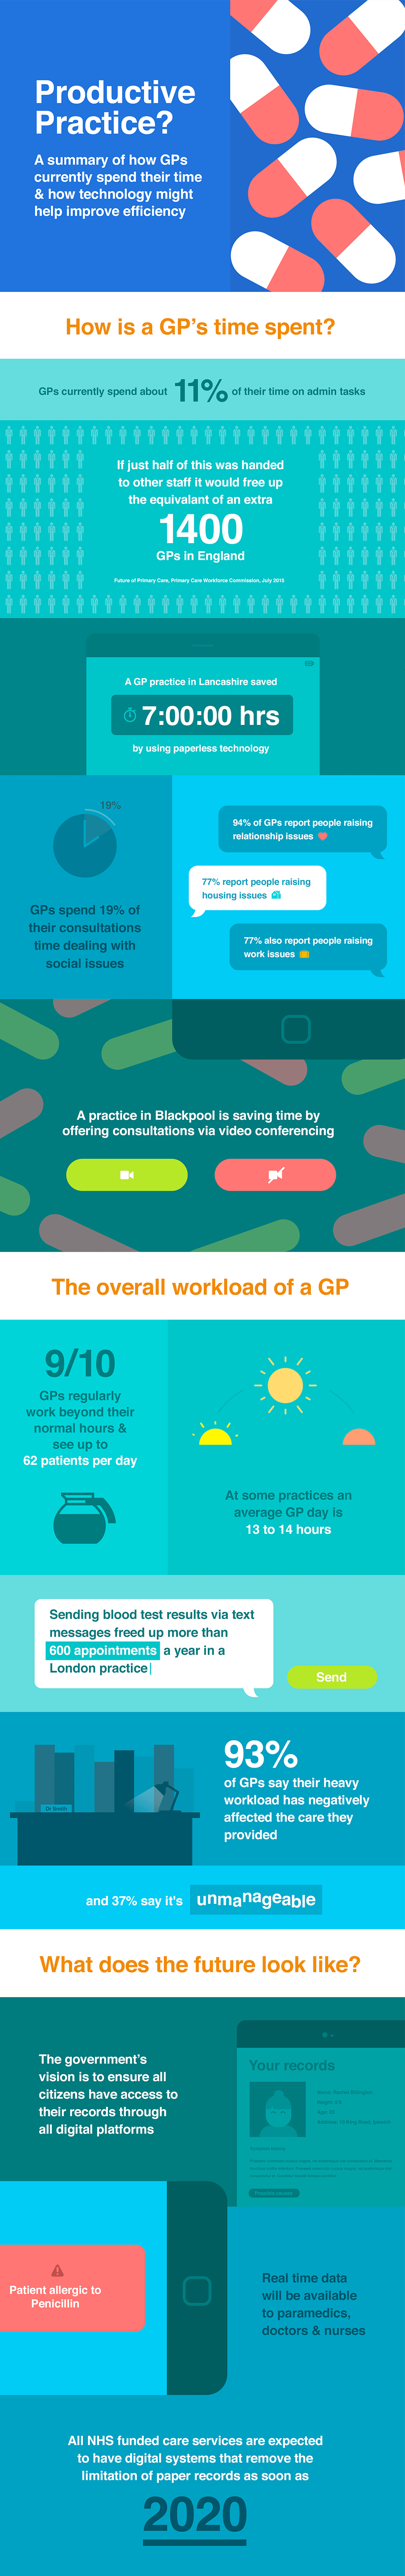 GP Workload: Statistics & Solutions for a More Productive Practice